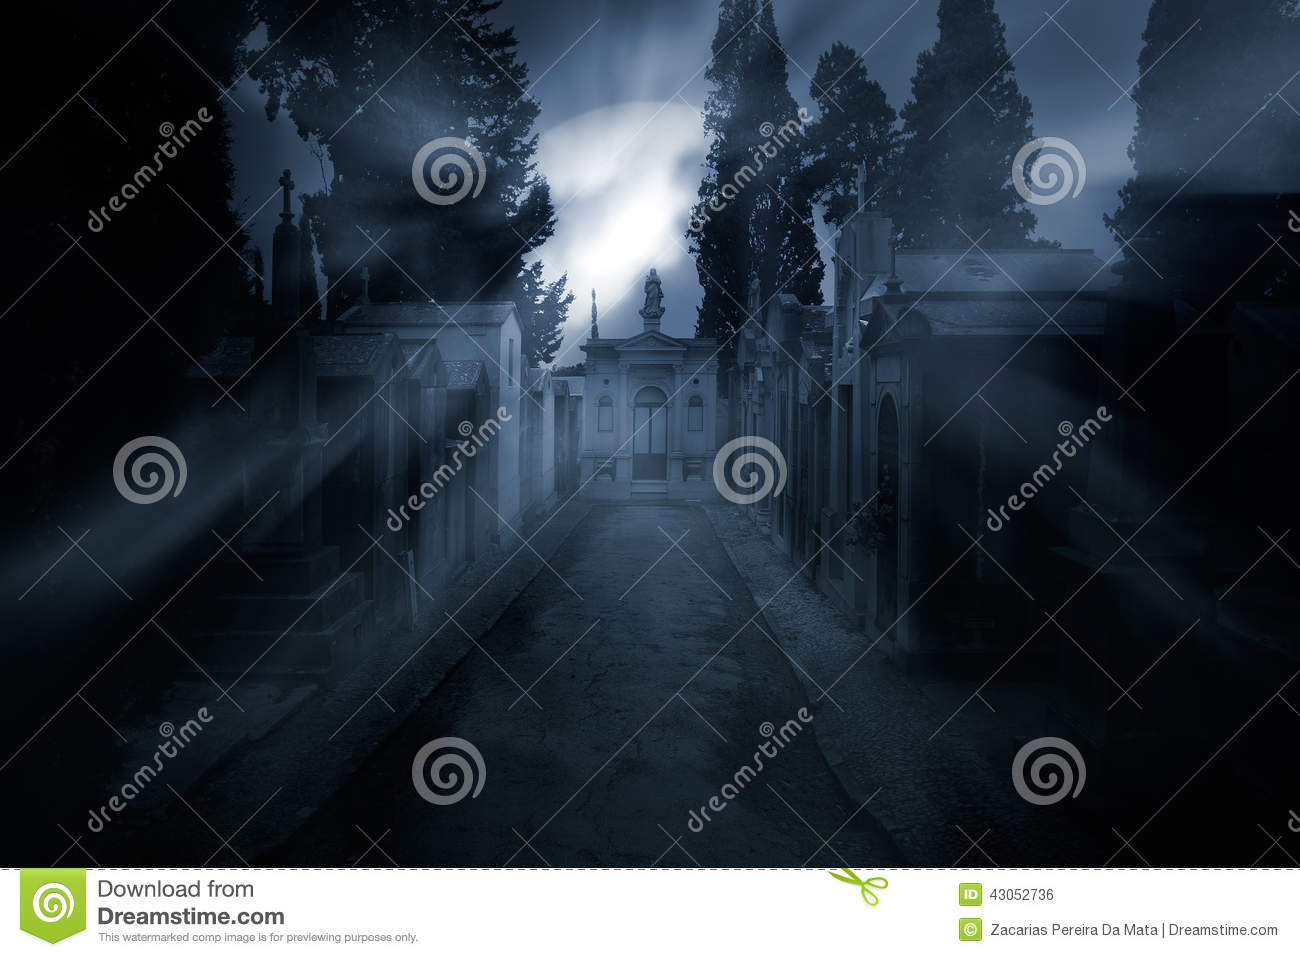 cemetery-foggy-full-moon-night-street-old-european-43052736